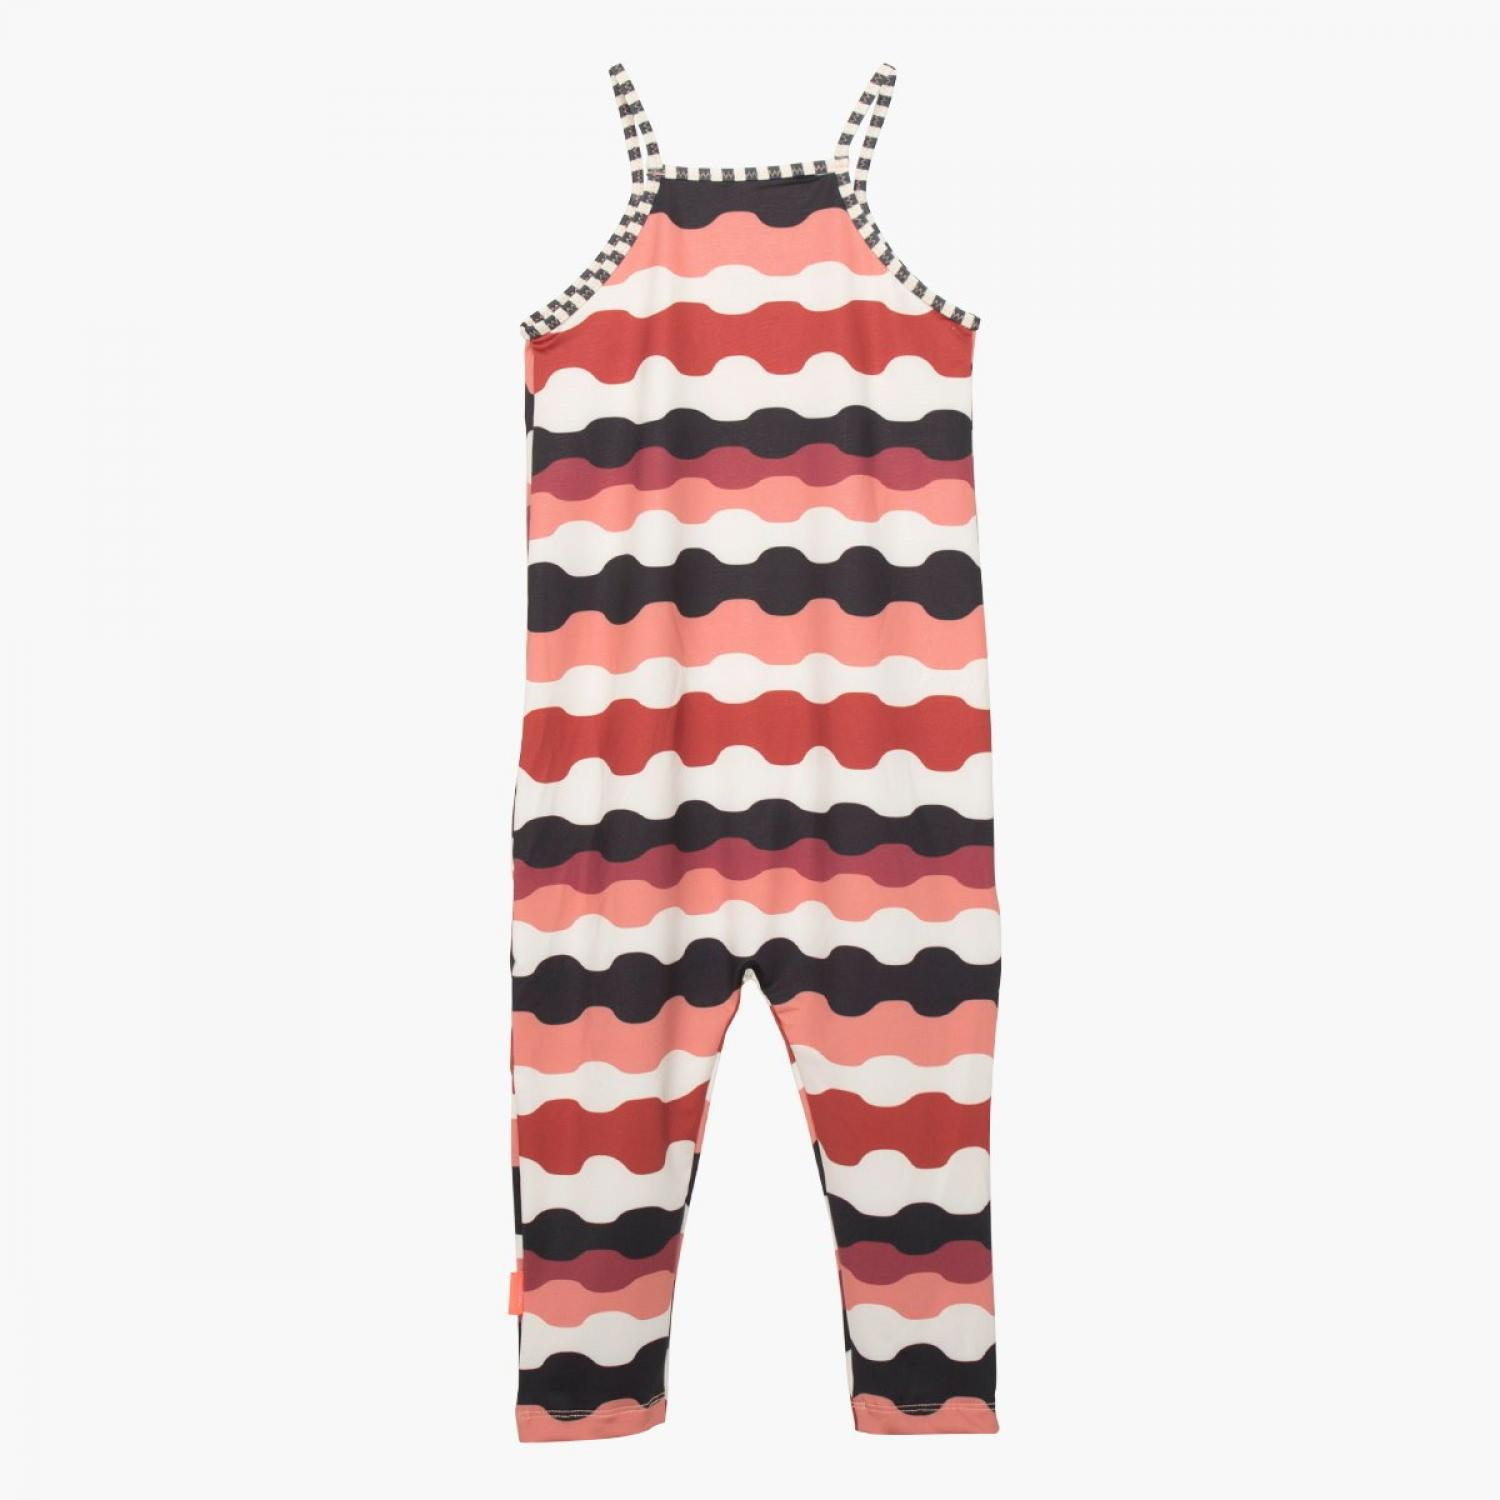 Mini Seea Chimi Kids Jumpsuit Coco